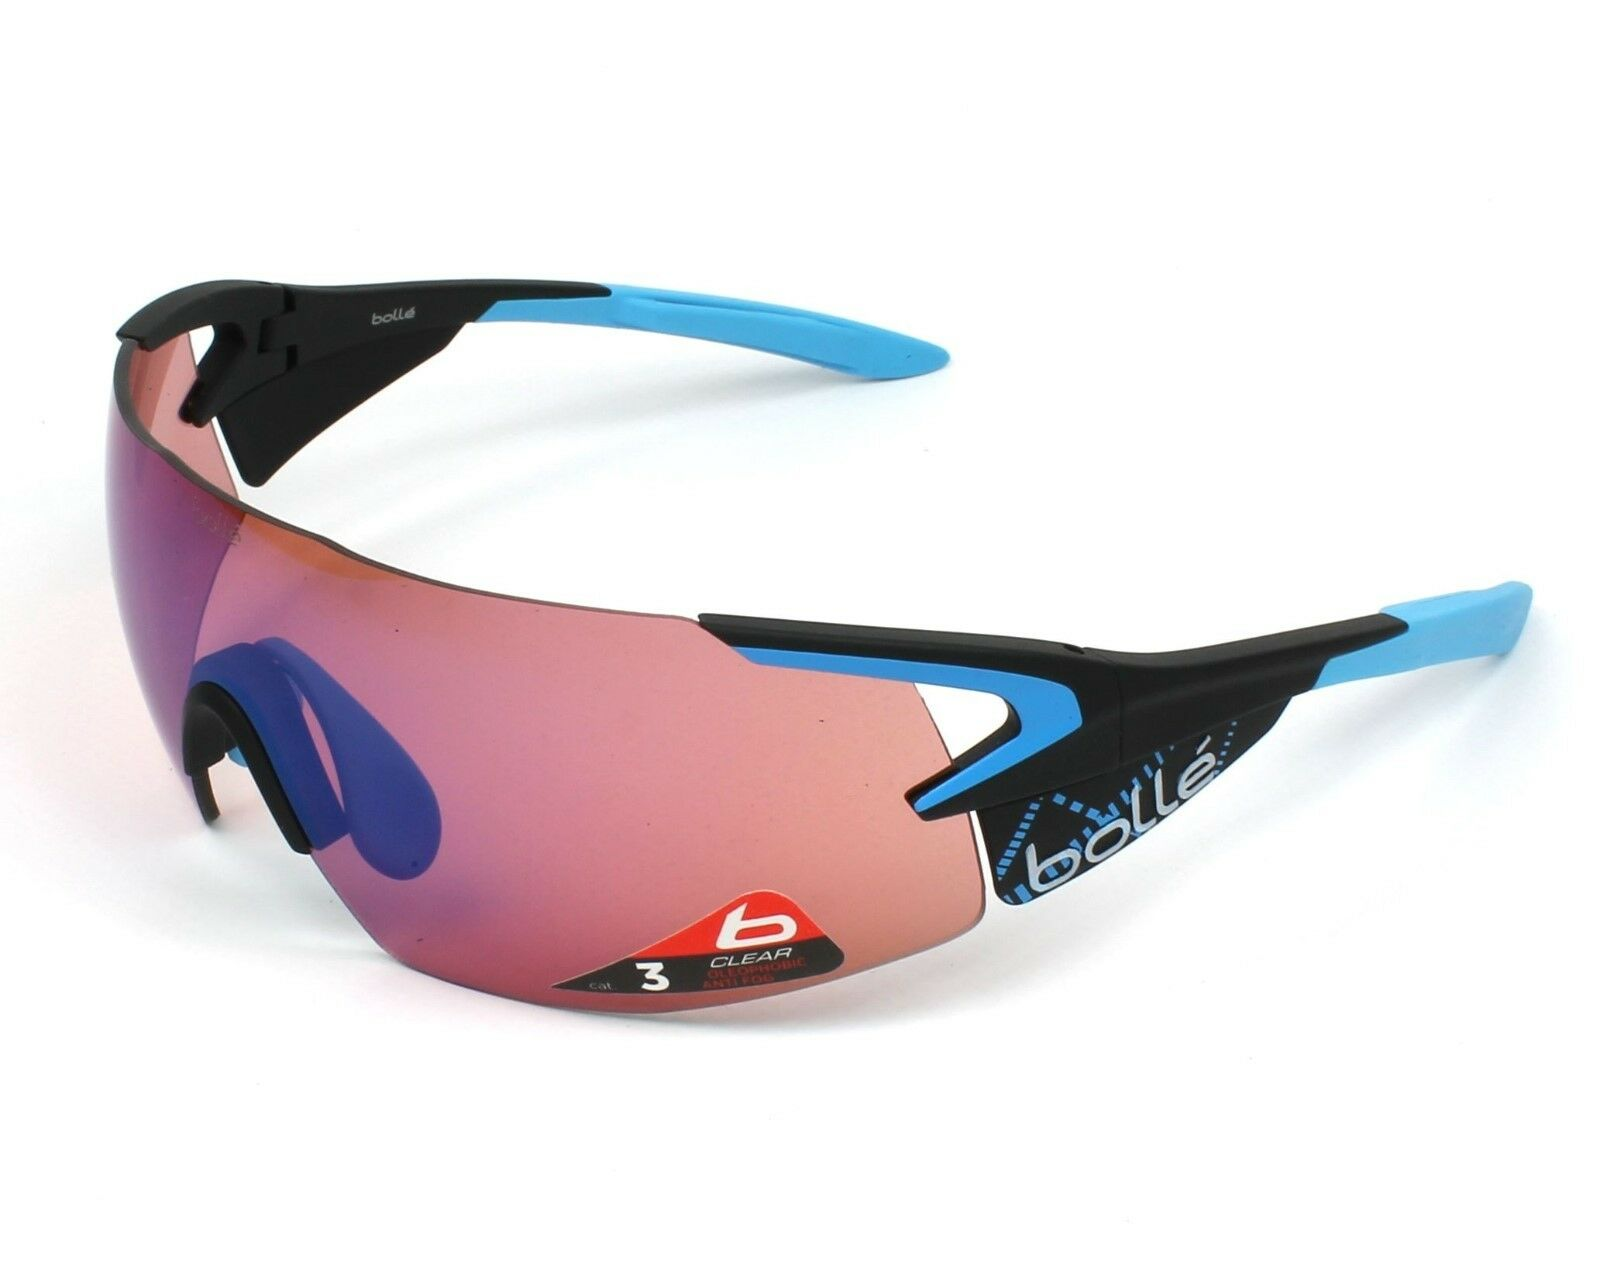 NEU Bollé 5th  ELEMENT PRO 12071 Radbrille Cycling Eyewear Worldwide Shipping NEW  cheaper prices